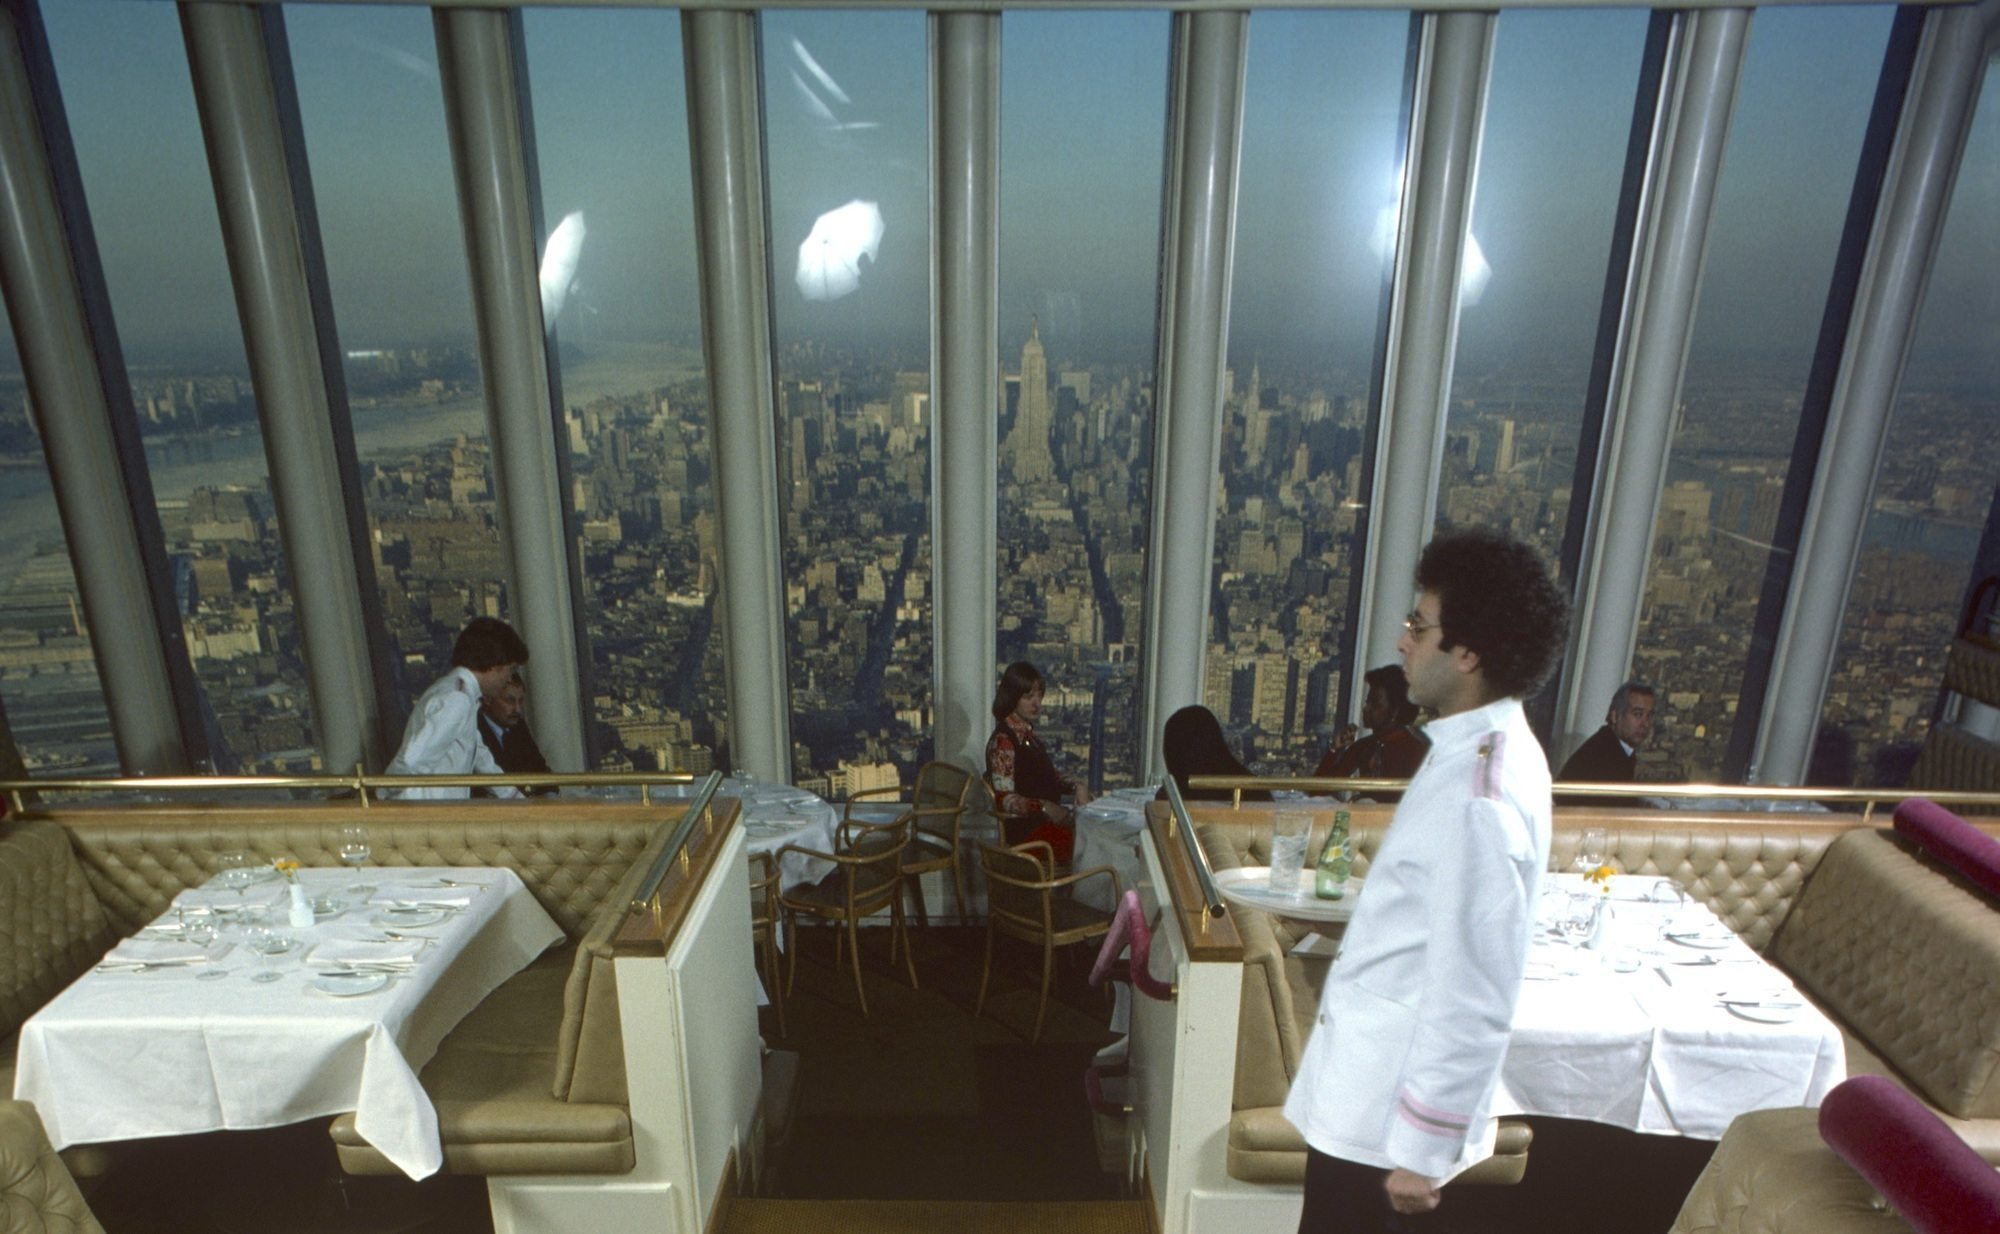 A view of the kitchen prep of the restaurant Windows on the World (on the 107th floor of the World Trade Center), New York, New York, January 1977. September 2021